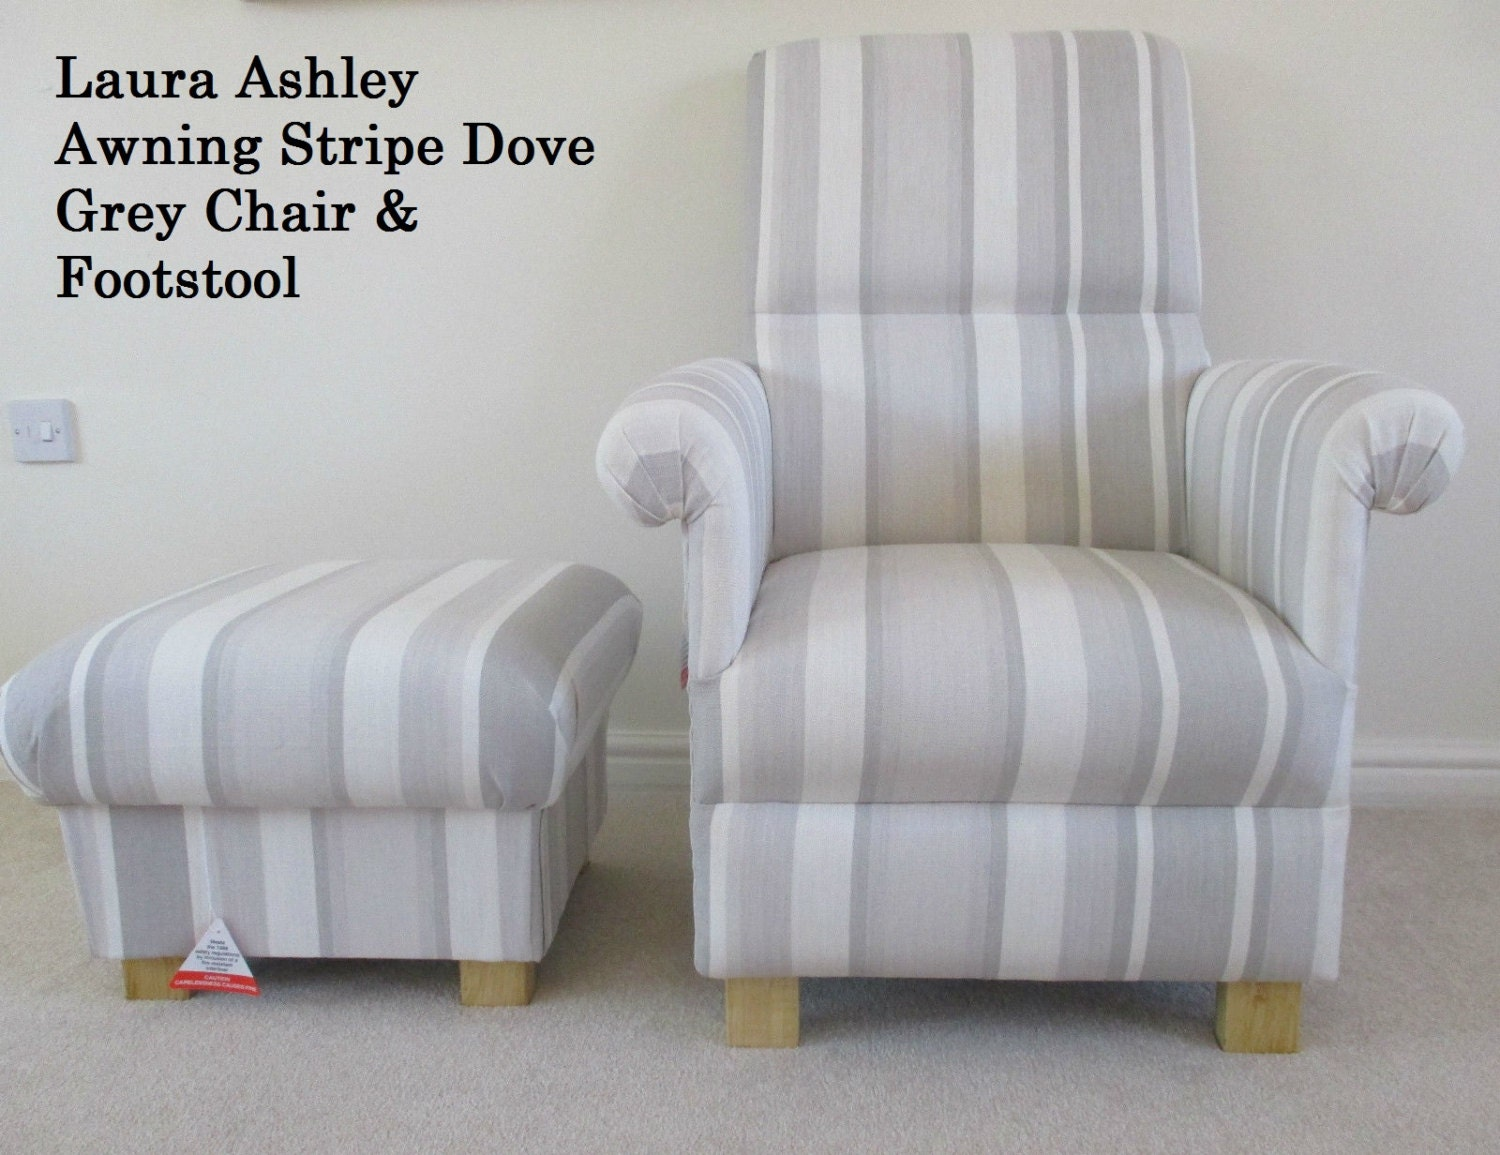 Laura Ashley Awning Stripe Dove Grey Fabric Chair & Footstool